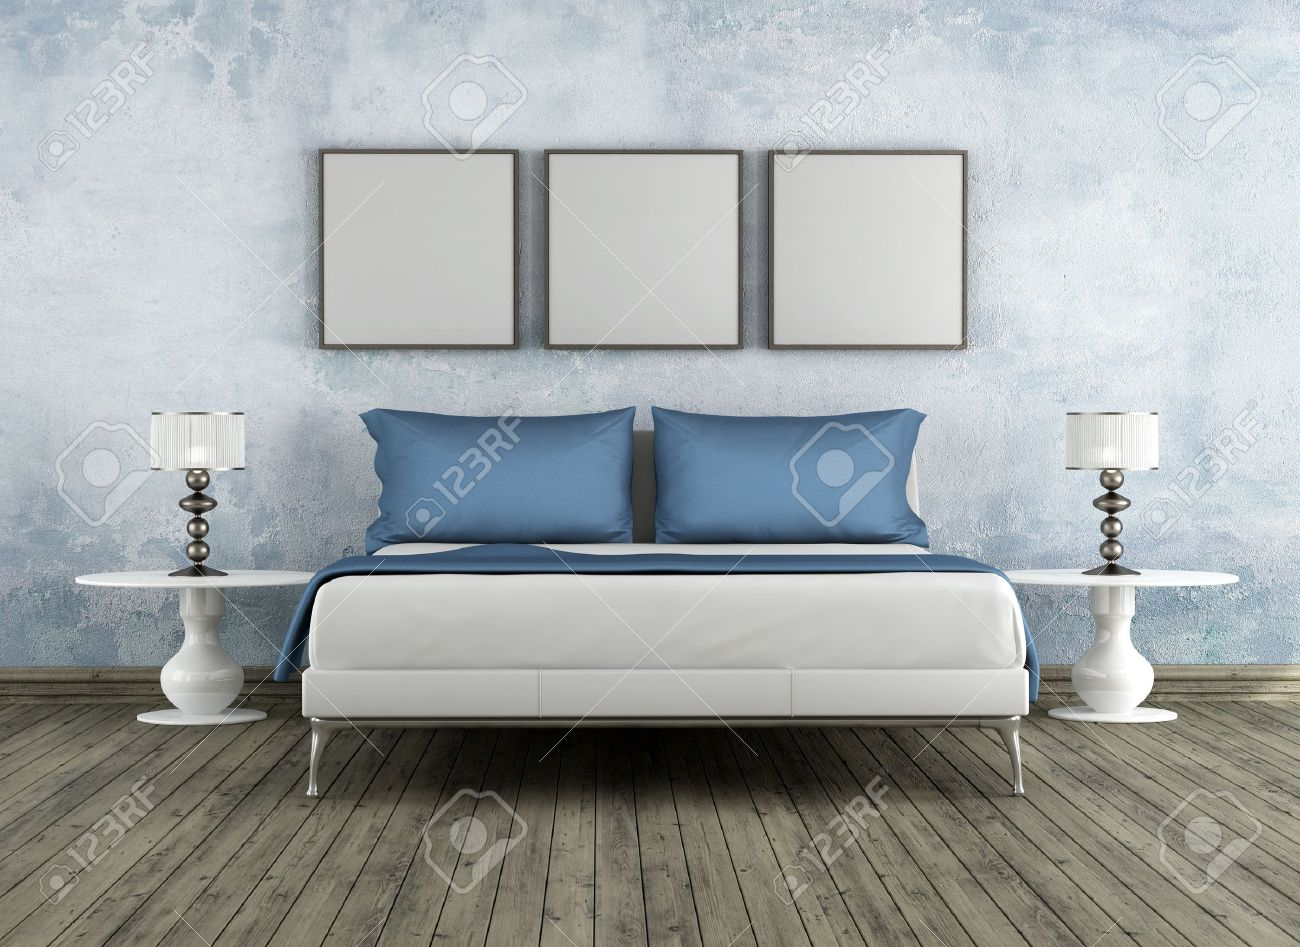 Modern bad in a vintage room   rendering stock photo, picture and ...